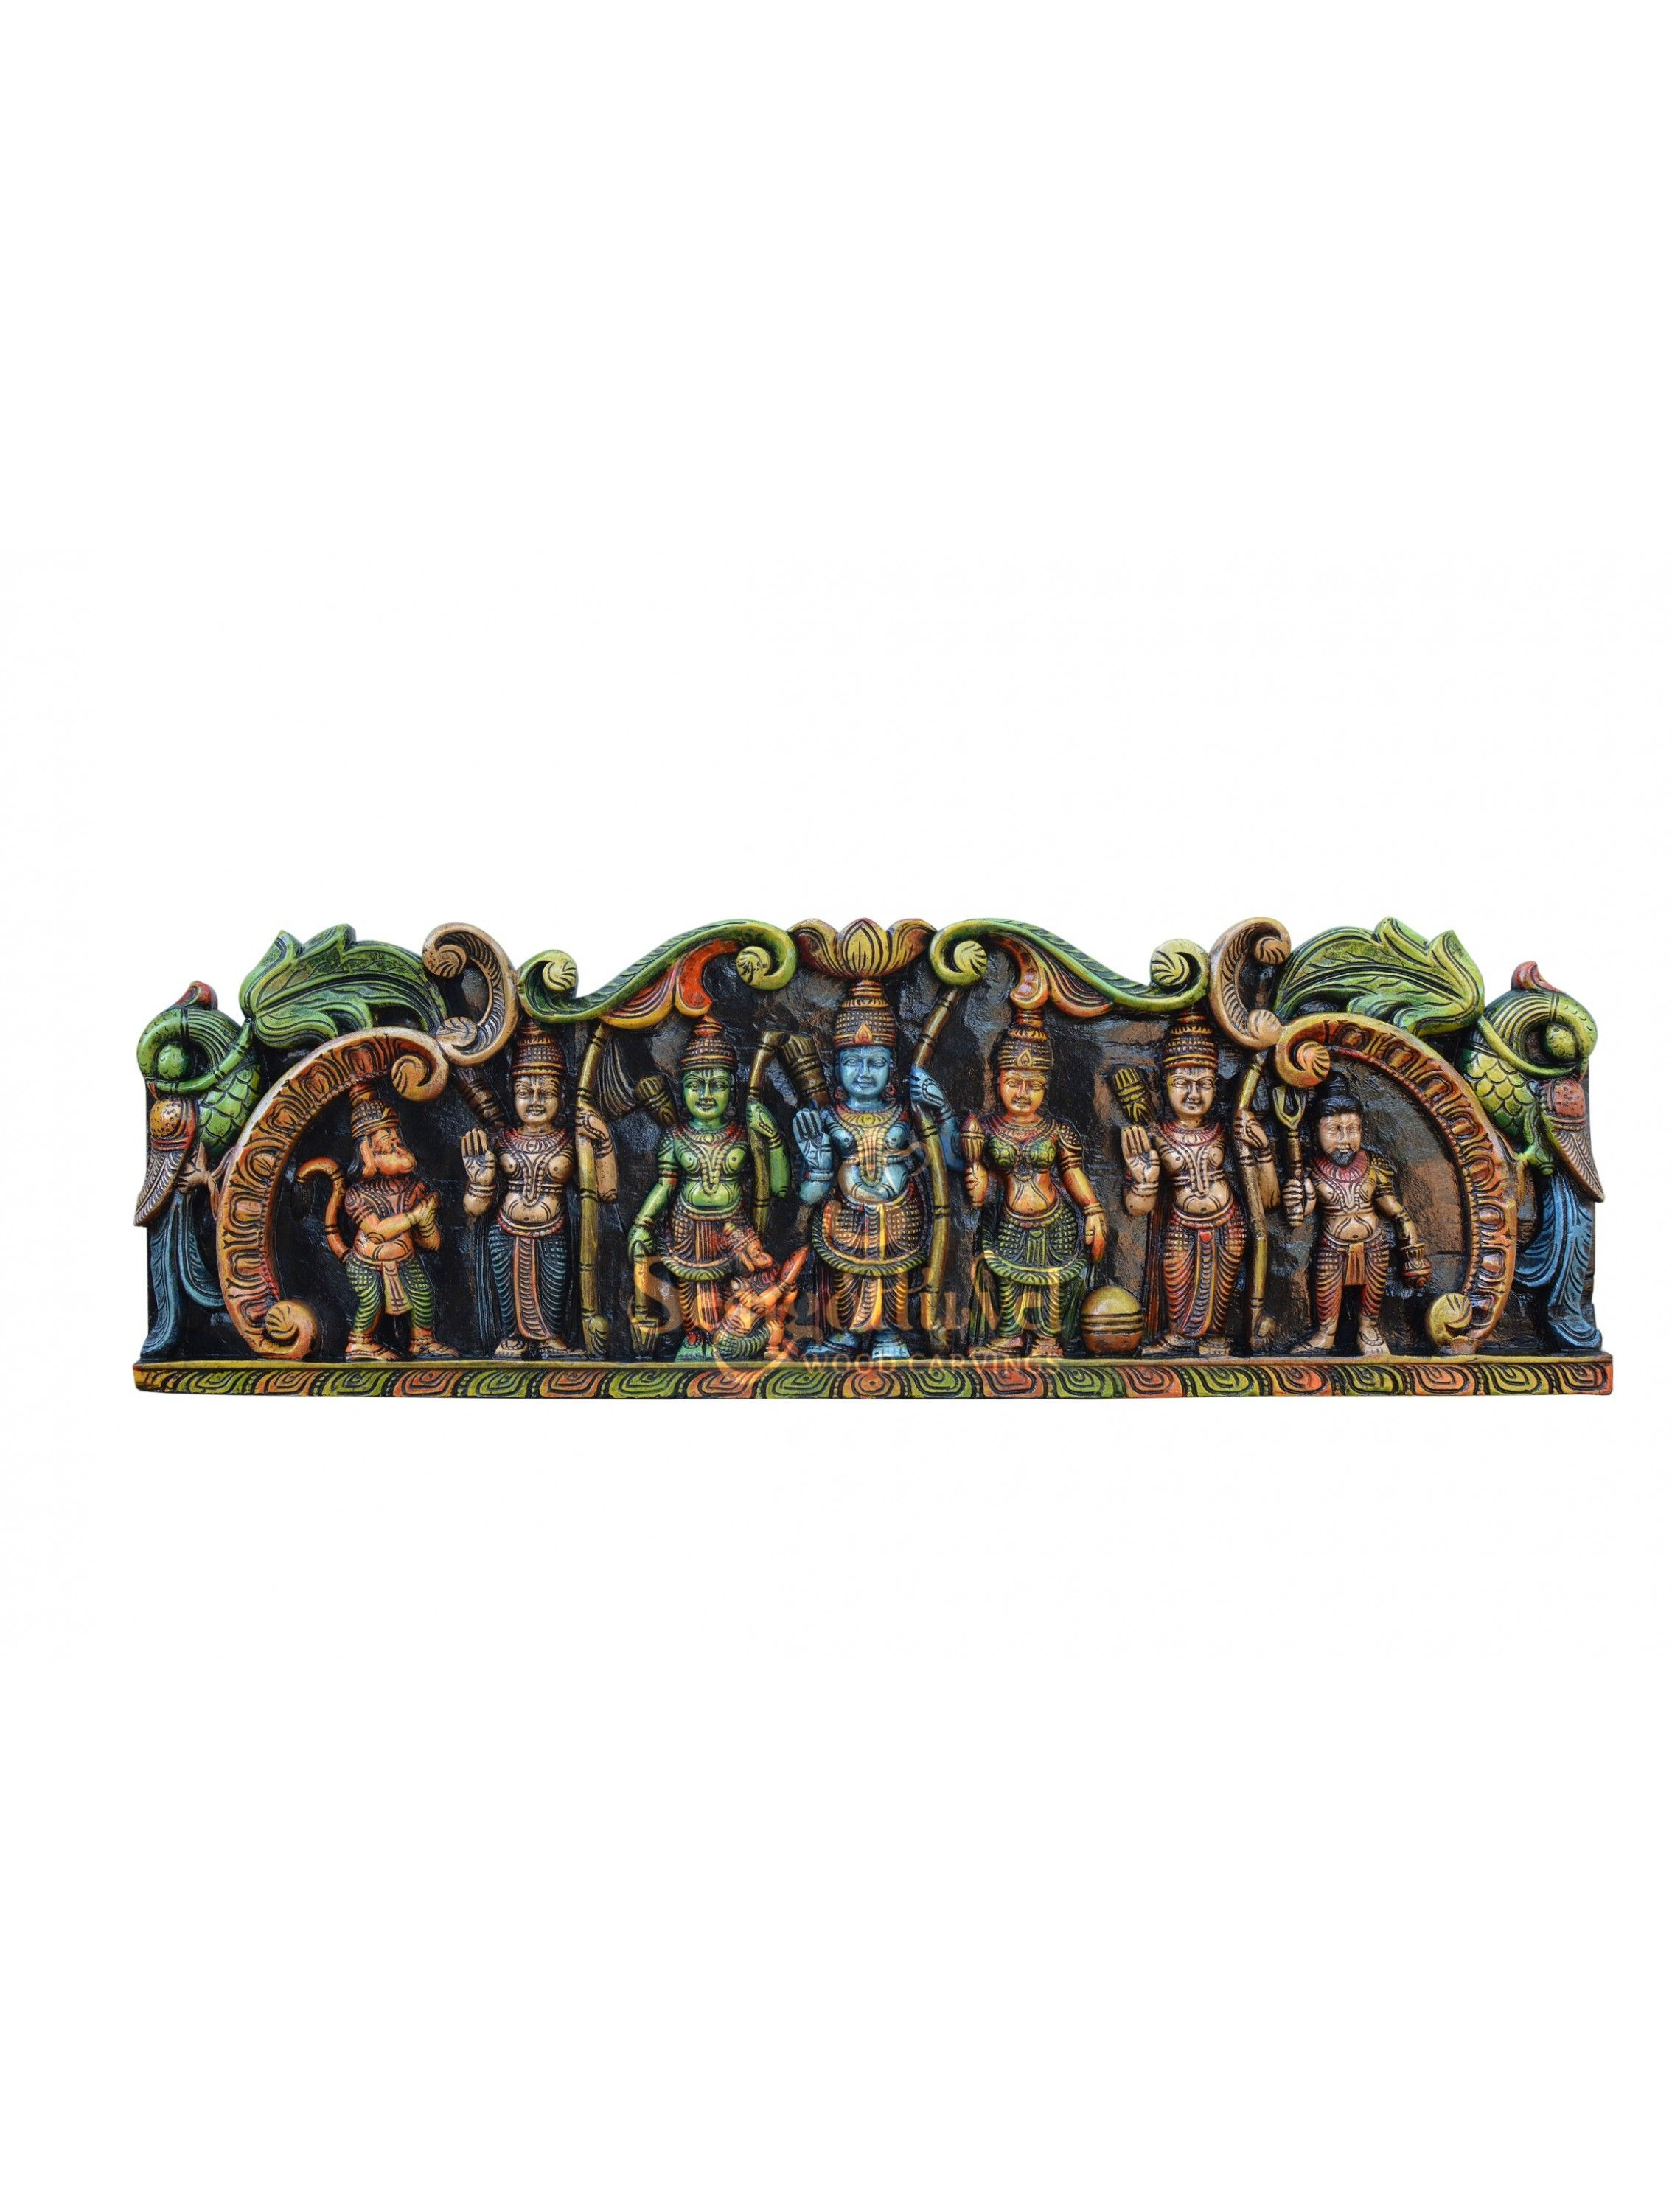 Rare multicolor wooden wall panels hanging door mount hand carved home decor art